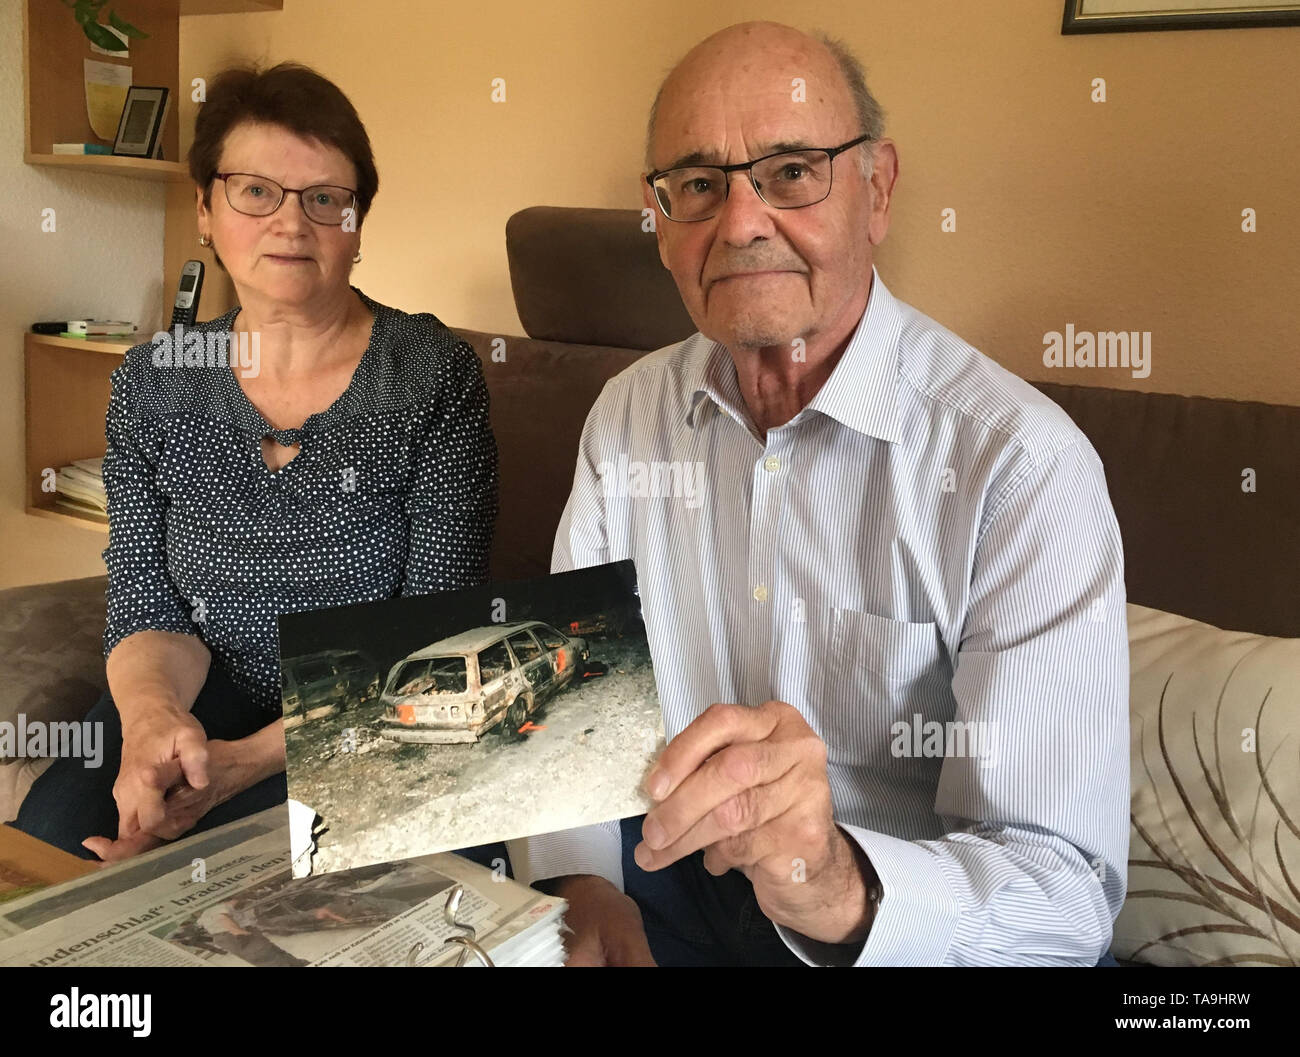 Teisendorf, Germany. 15th May, 2019. The married couple Ludwig and Eva Mayer from Teisendorf in Upper Bavaria. Ludwig Mayer (77) holds a photo of his VW Passat, which burned out in the Tauern tunnel catastrophe. 71-year-old Eva Mayer is still afraid of trucks today. They were among the survivors of the accident which claimed twelve lives and injured 48 on 29 May 1999. (to dpa ' Barefoot from the hell of flames - Inferno in the Tauern tunnel had consequences') Credit: Matthias Röder/dpa/Alamy Live News - Stock Image